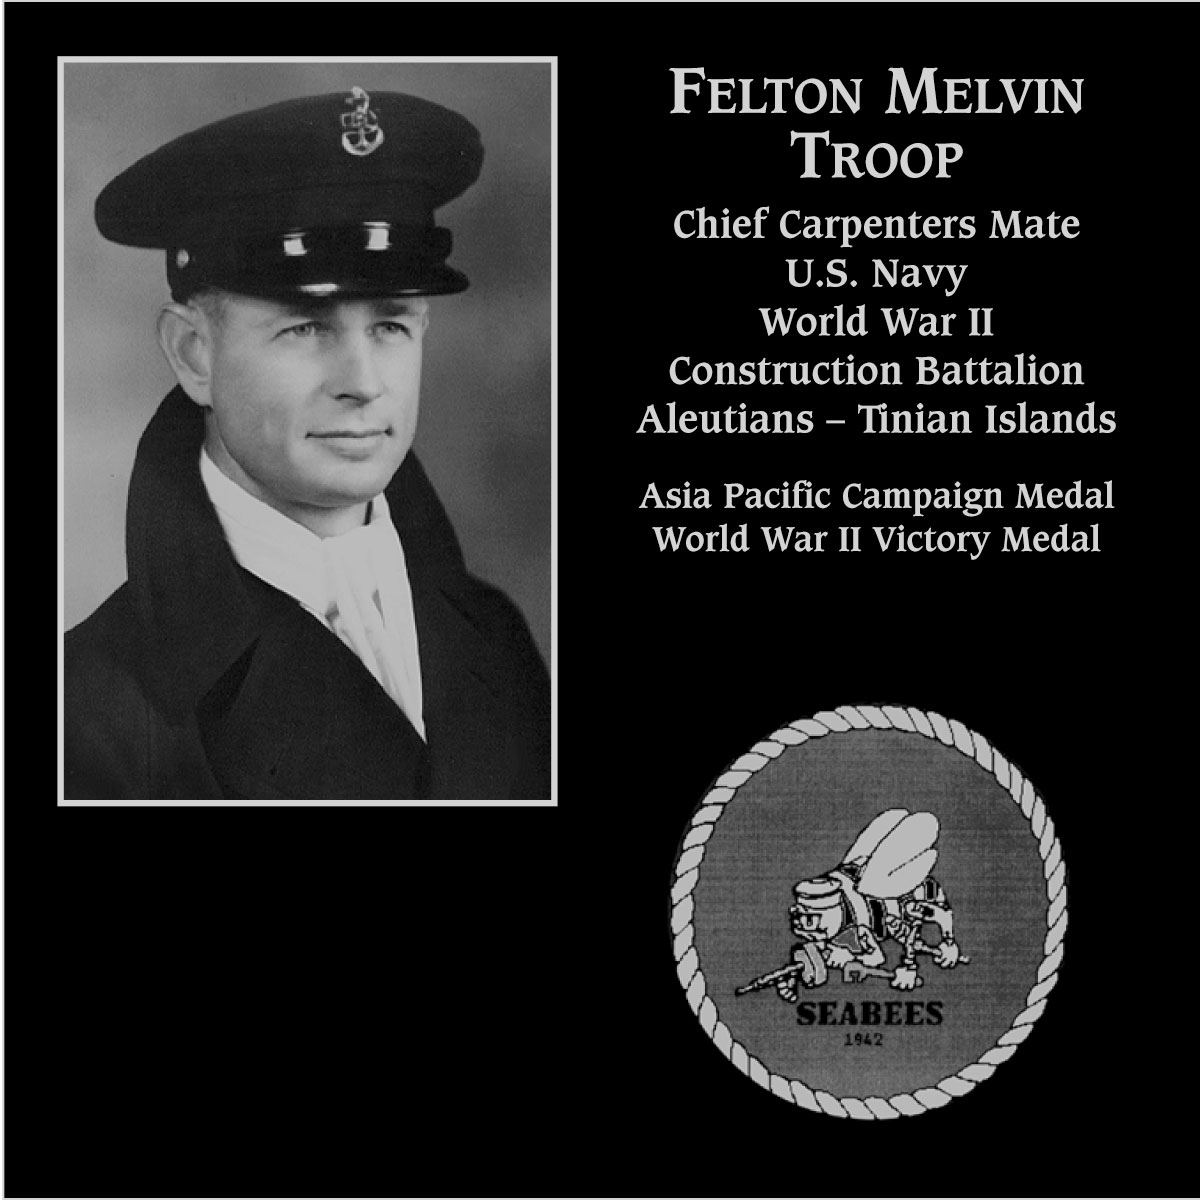 Felton Melvin Troop